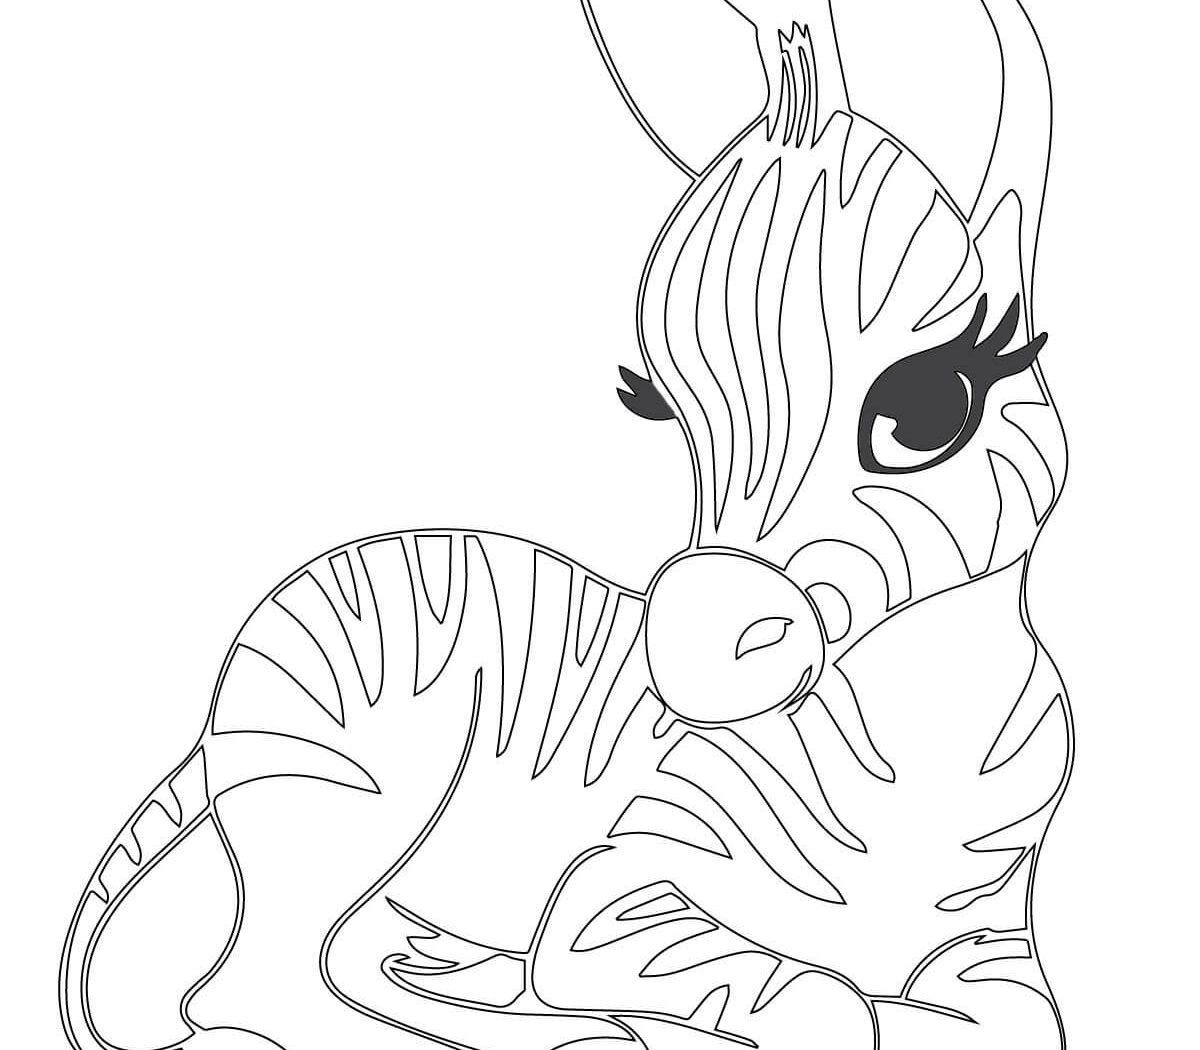 Zebra Coloring Pages Printable Zebra Pictures Images Free Coloring Awful Pages Disney For